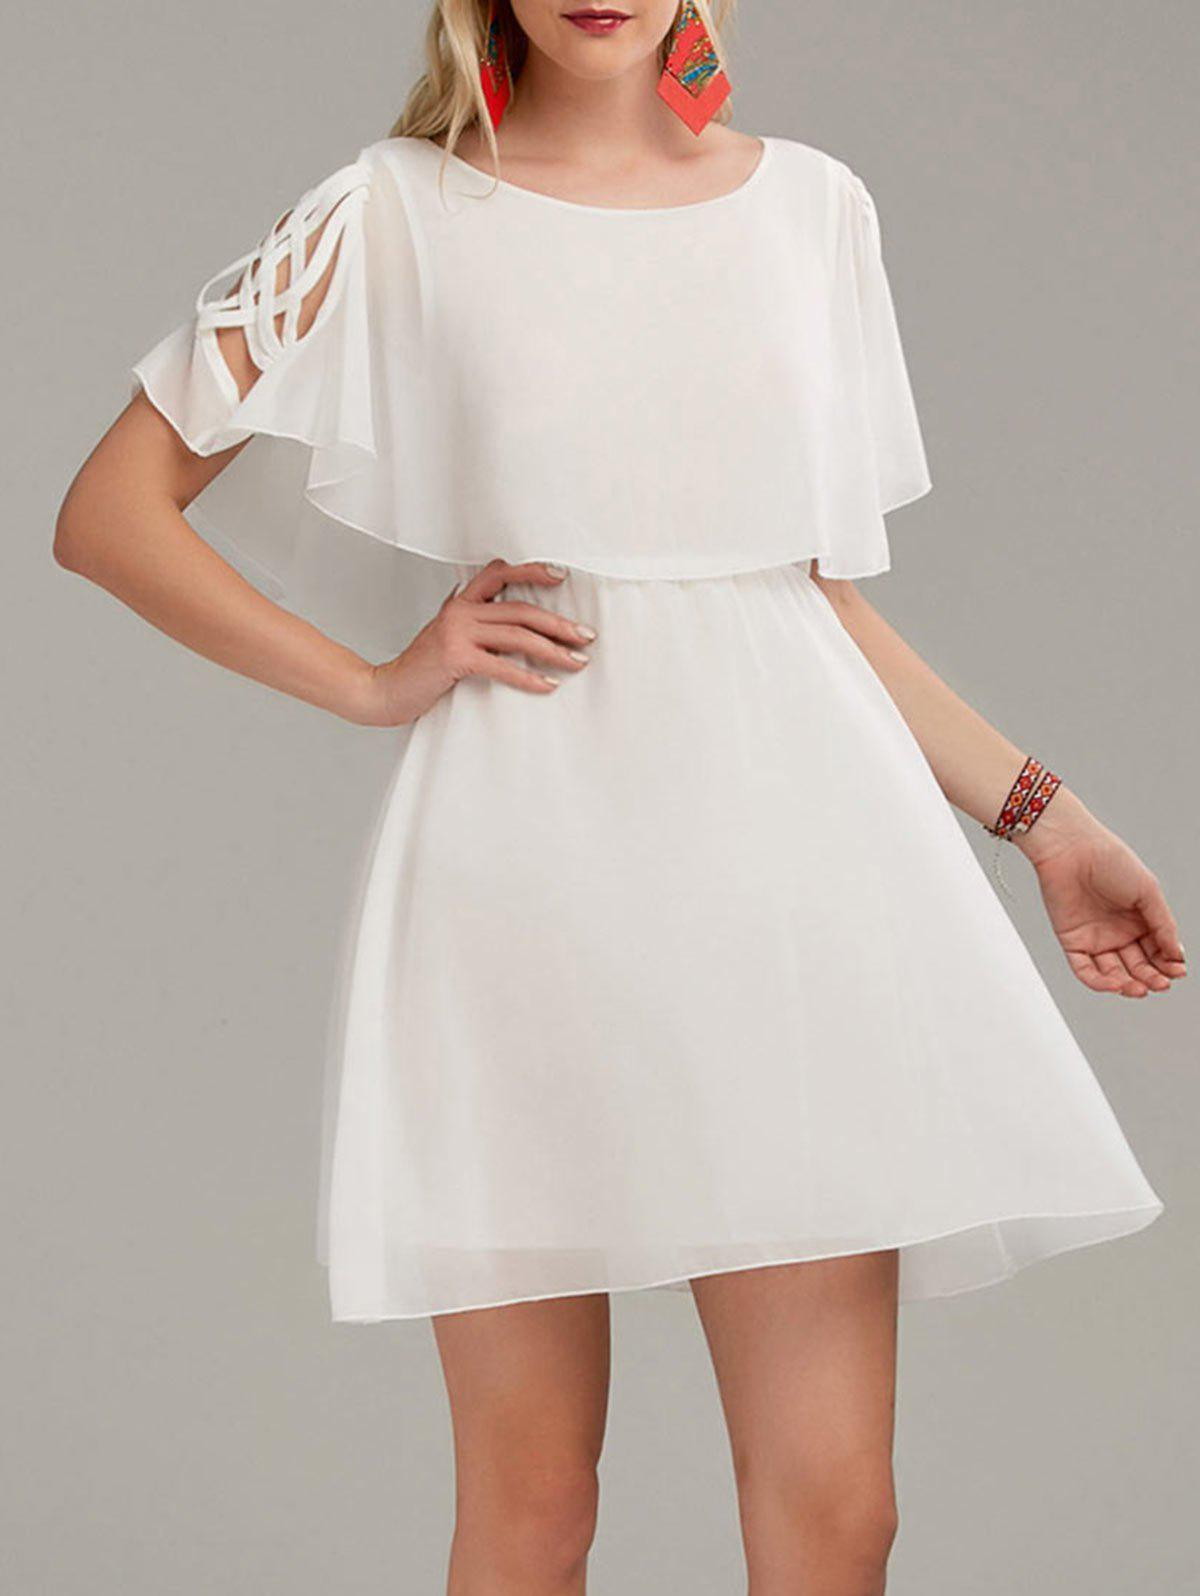 Sale Ruffle Overlay Chiffon Cold Shoulder Dress